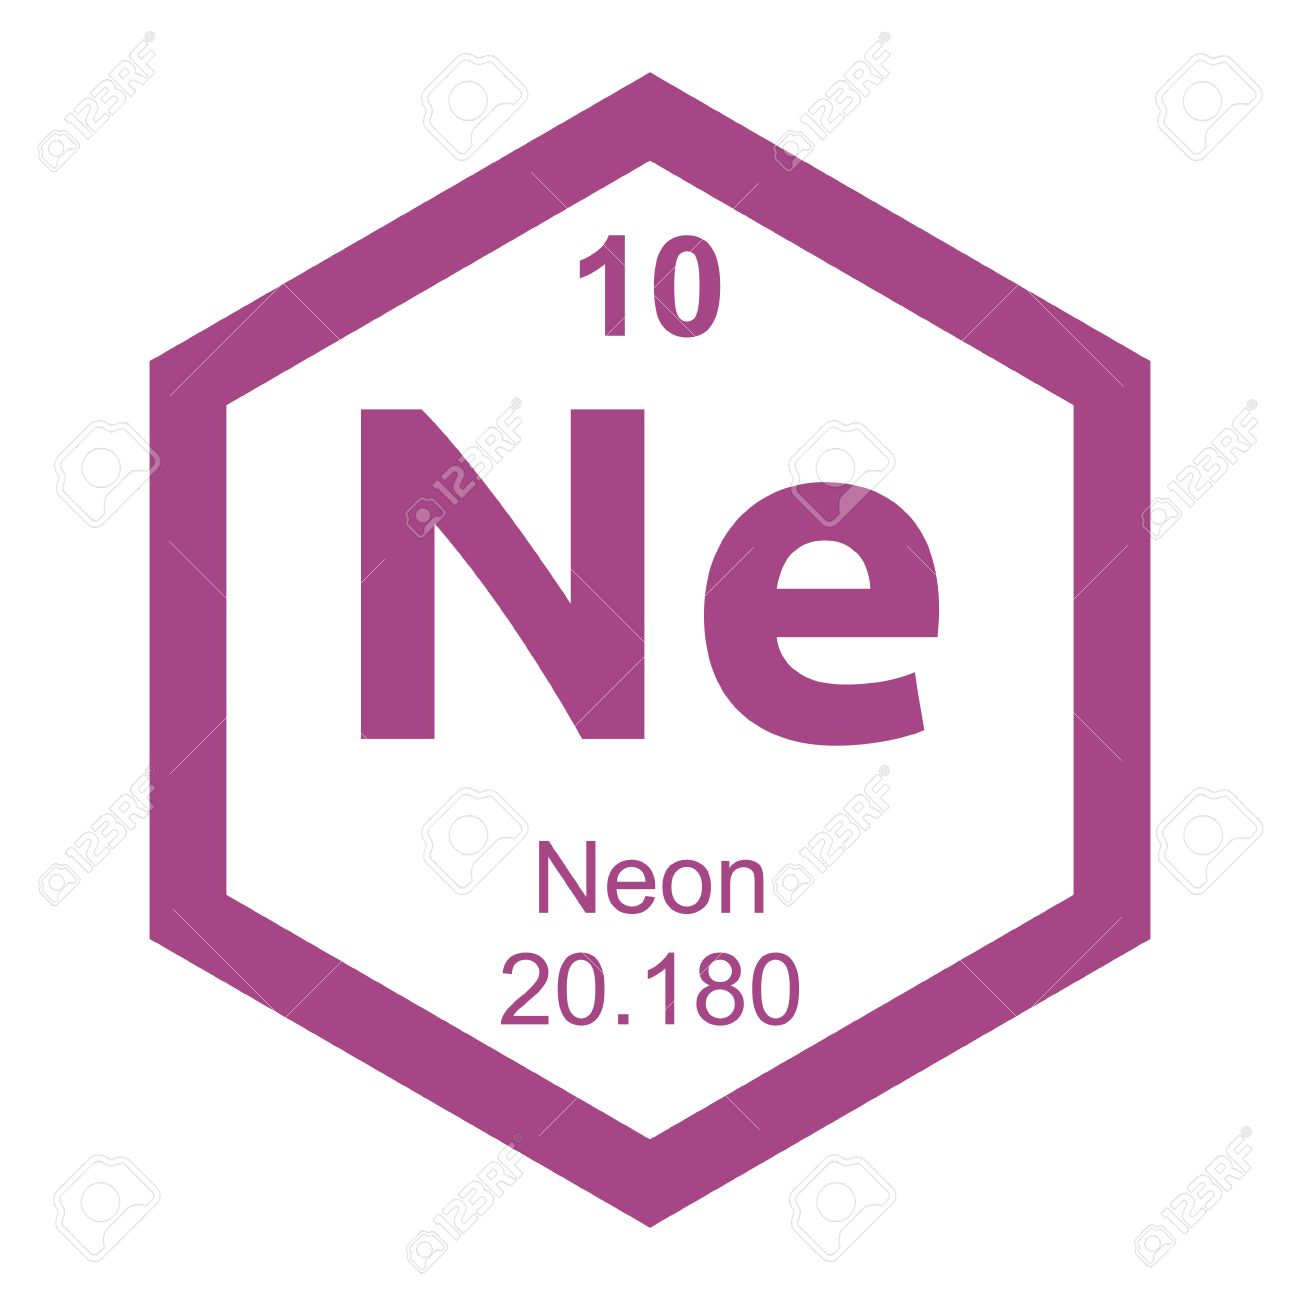 Neon periodic table of elements images periodic table images neon periodic table of elements image collections periodic table periodic table of elements neon images periodic gamestrikefo Images